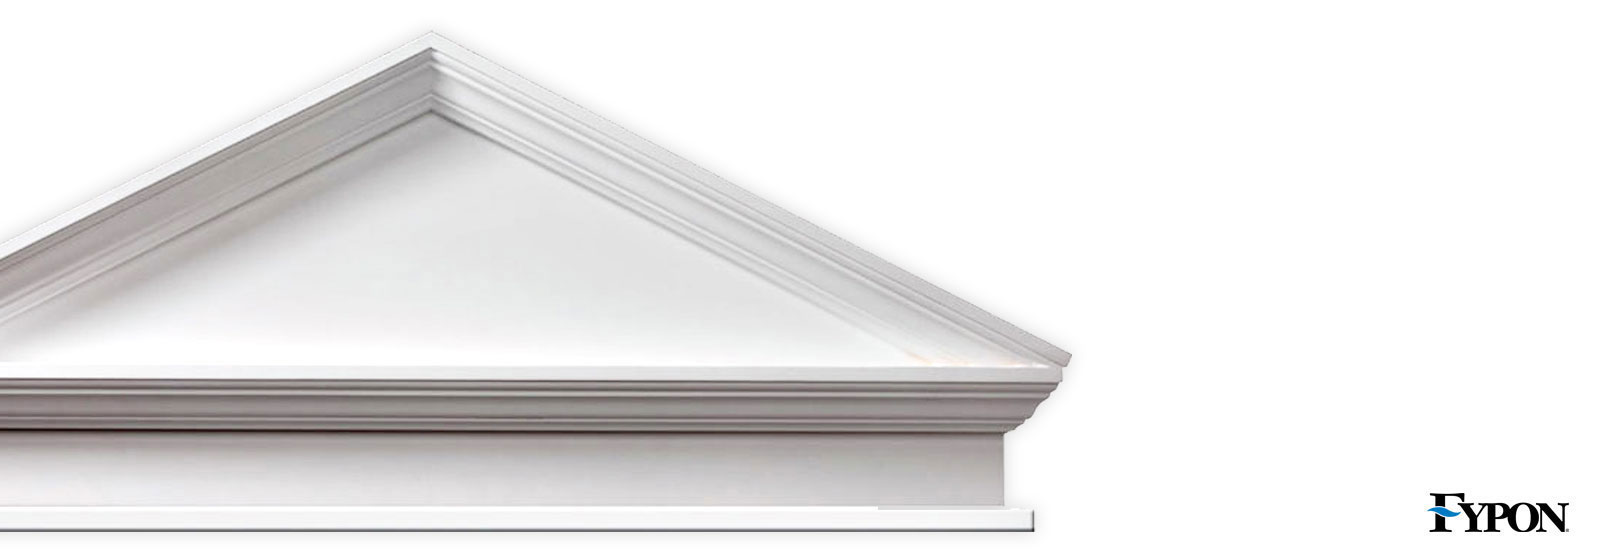 Fypon pediments fypon millwork pediments shop diy for Fypon window pediments